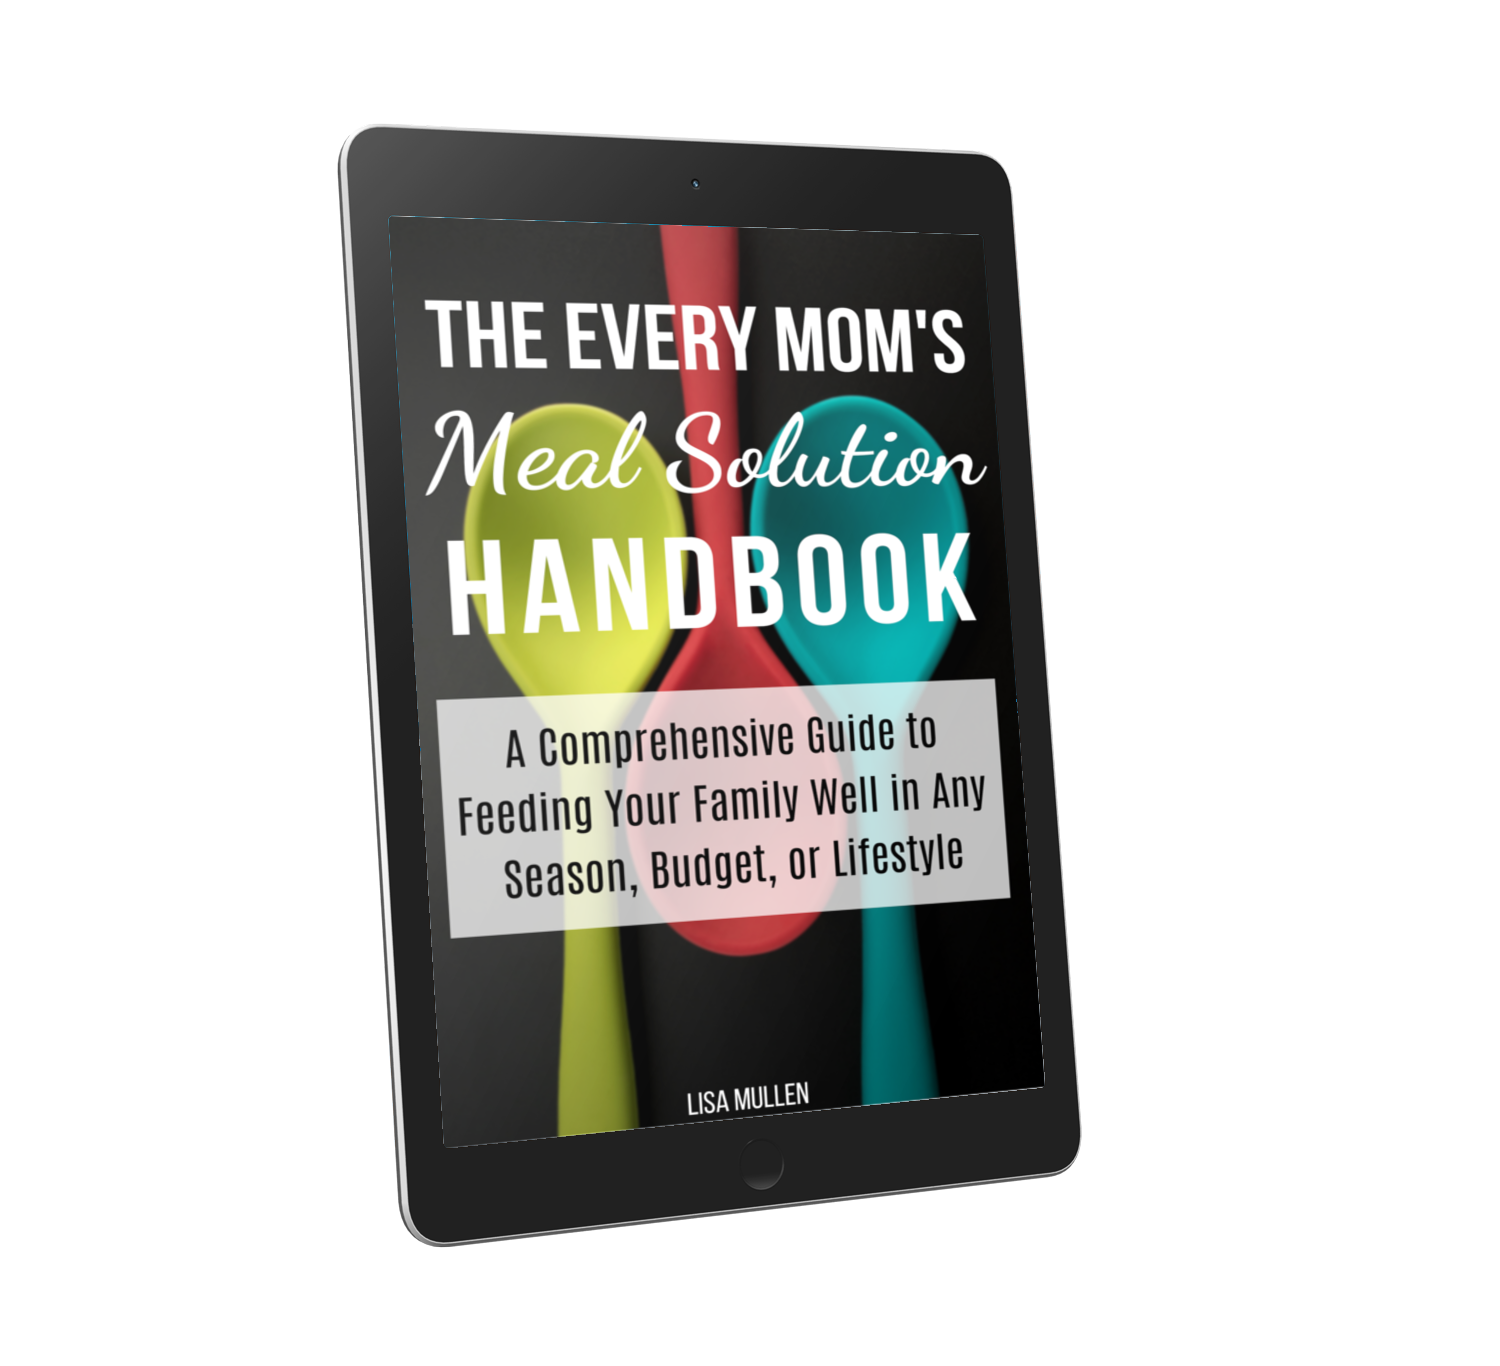 The Every Mom's Meal Solution Handbook